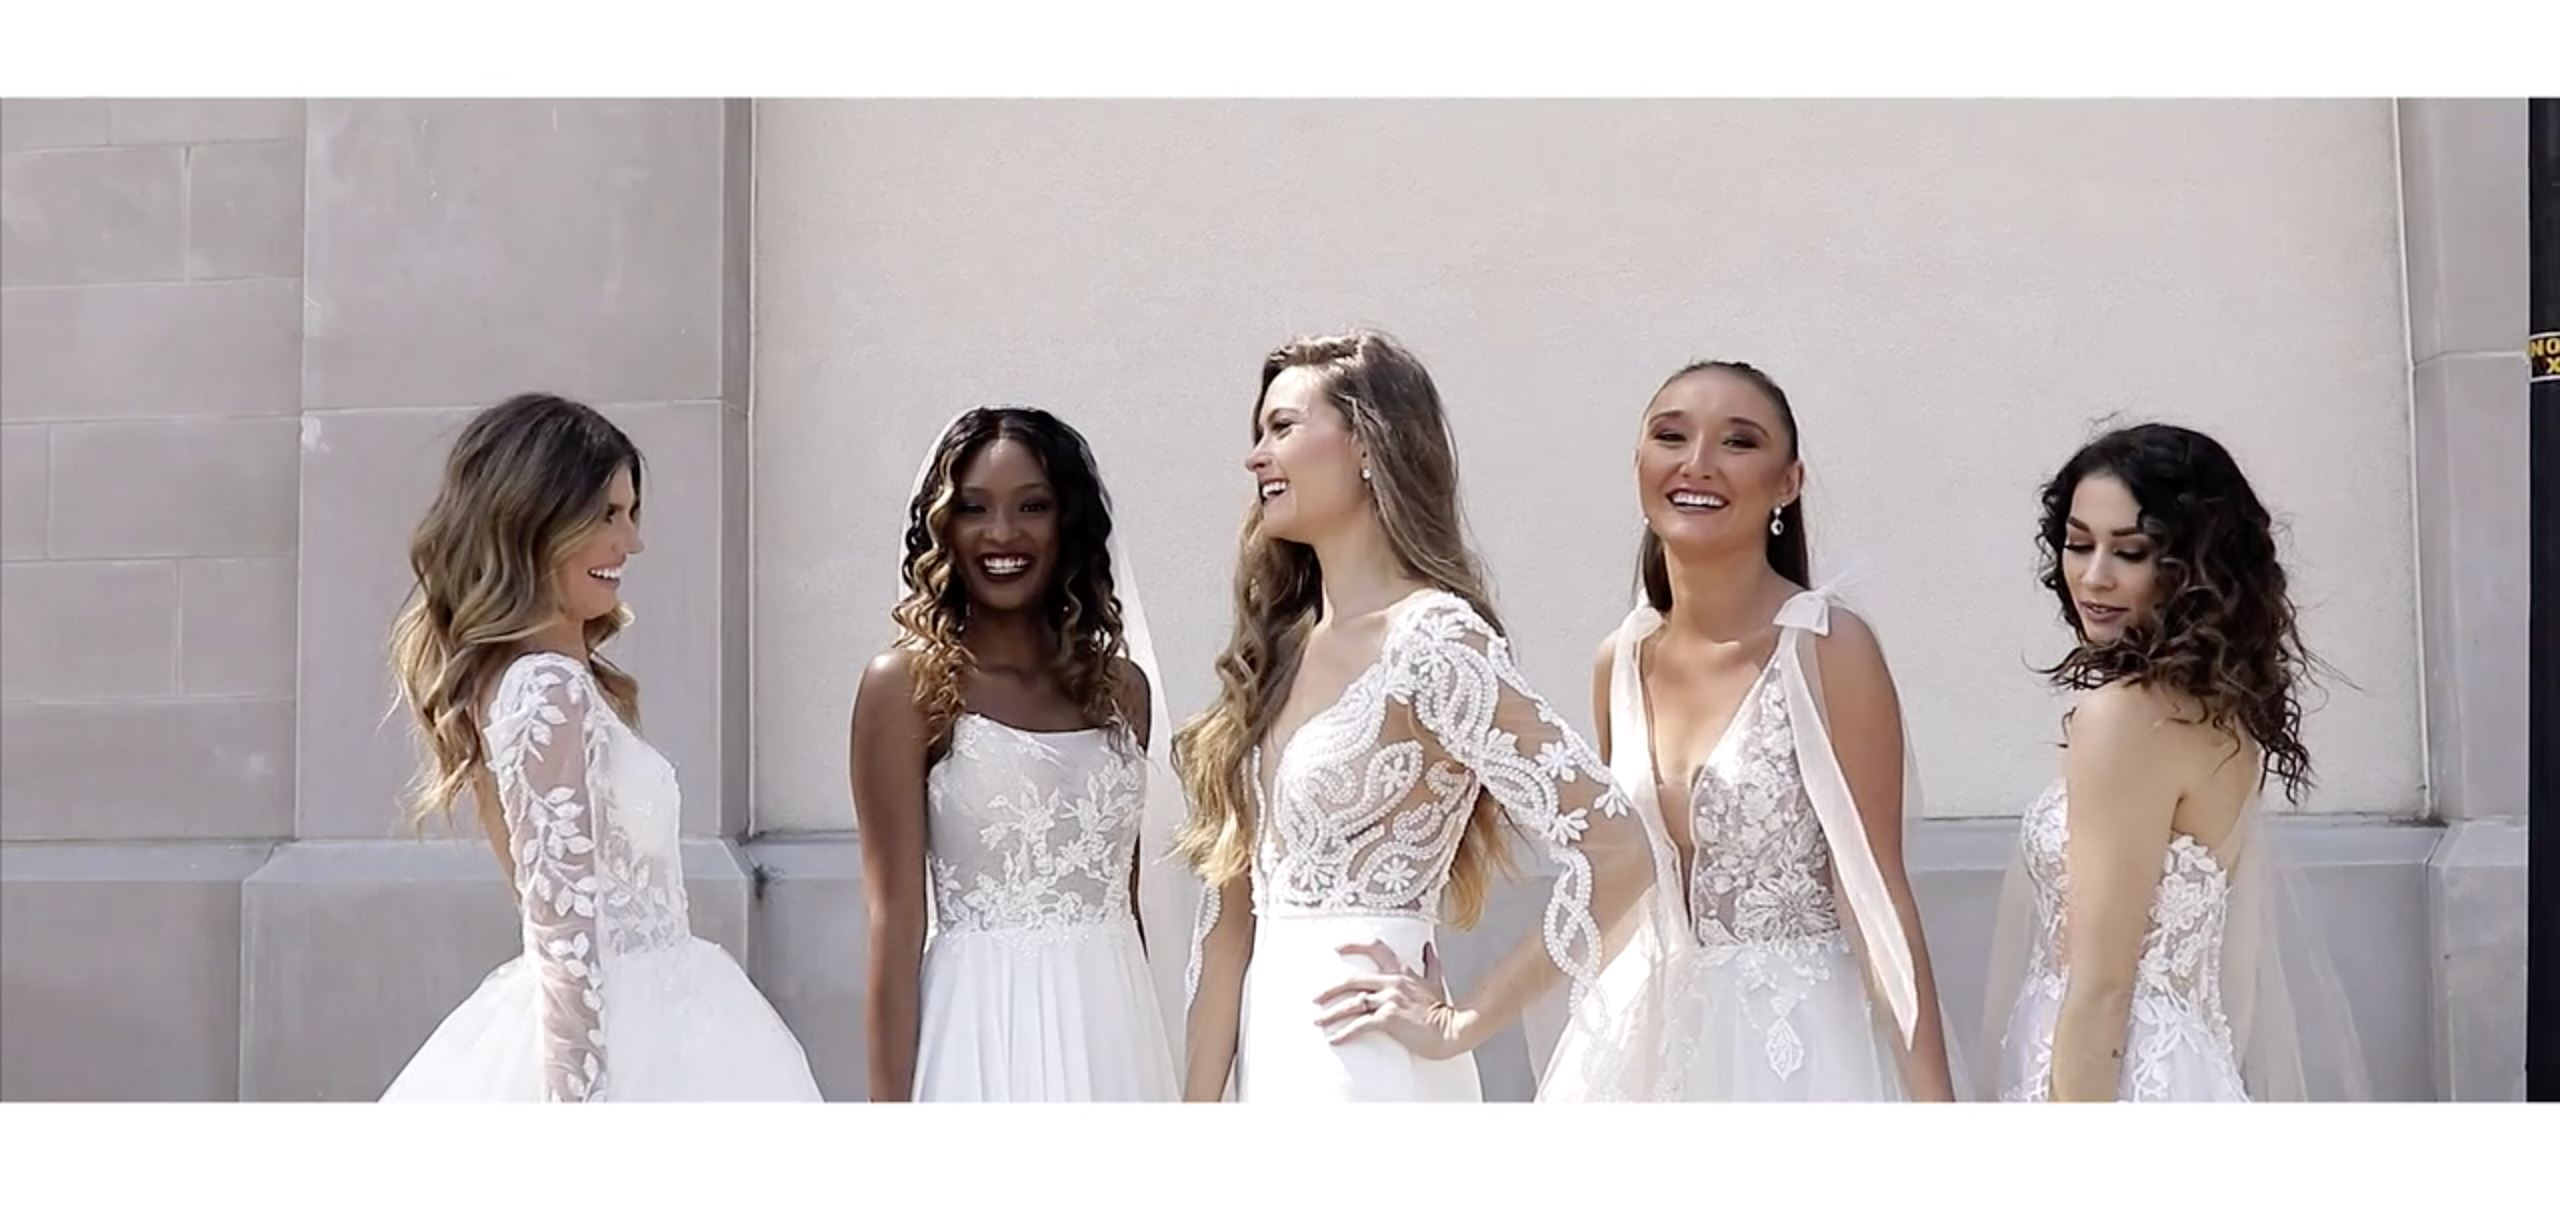 Five brides wearing floral white wedding dresses